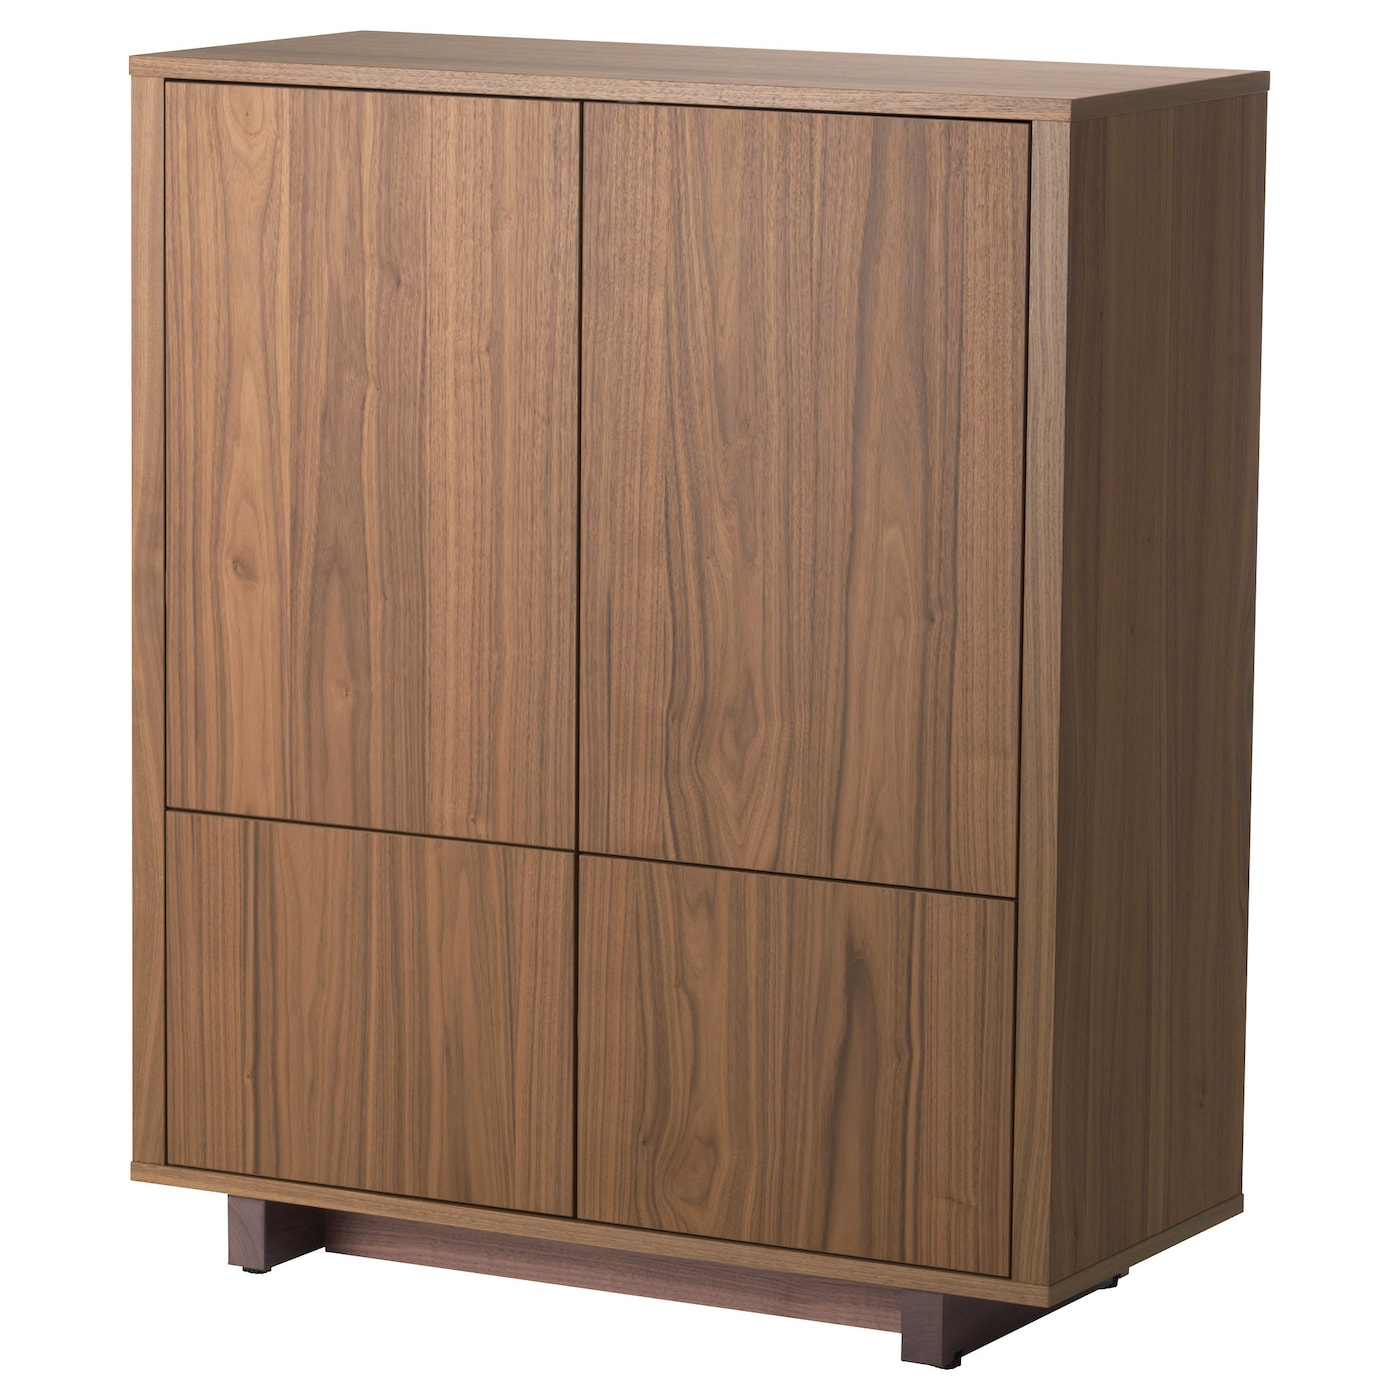 stockholm cabinet with 2 drawers walnut veneer 90x107 cm. Black Bedroom Furniture Sets. Home Design Ideas